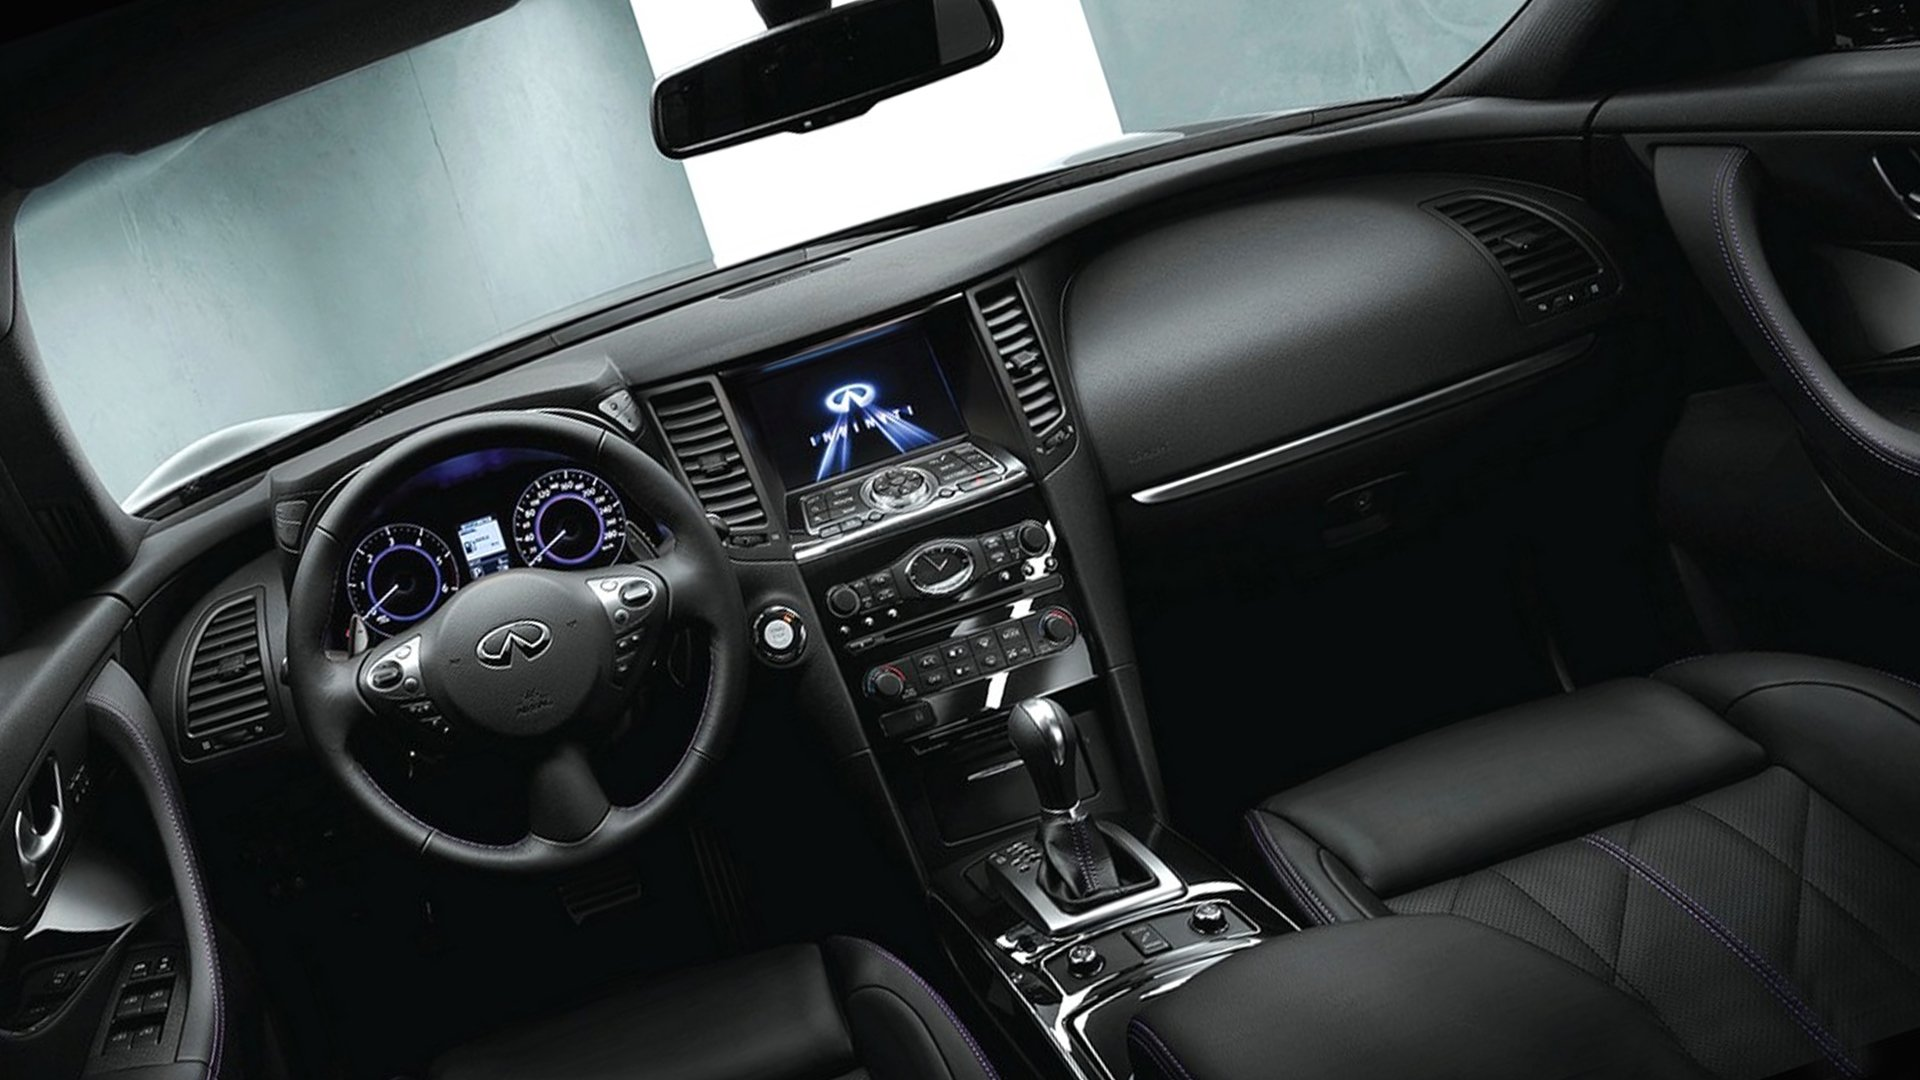 New 2019 Infiniti QX70 Interior Design